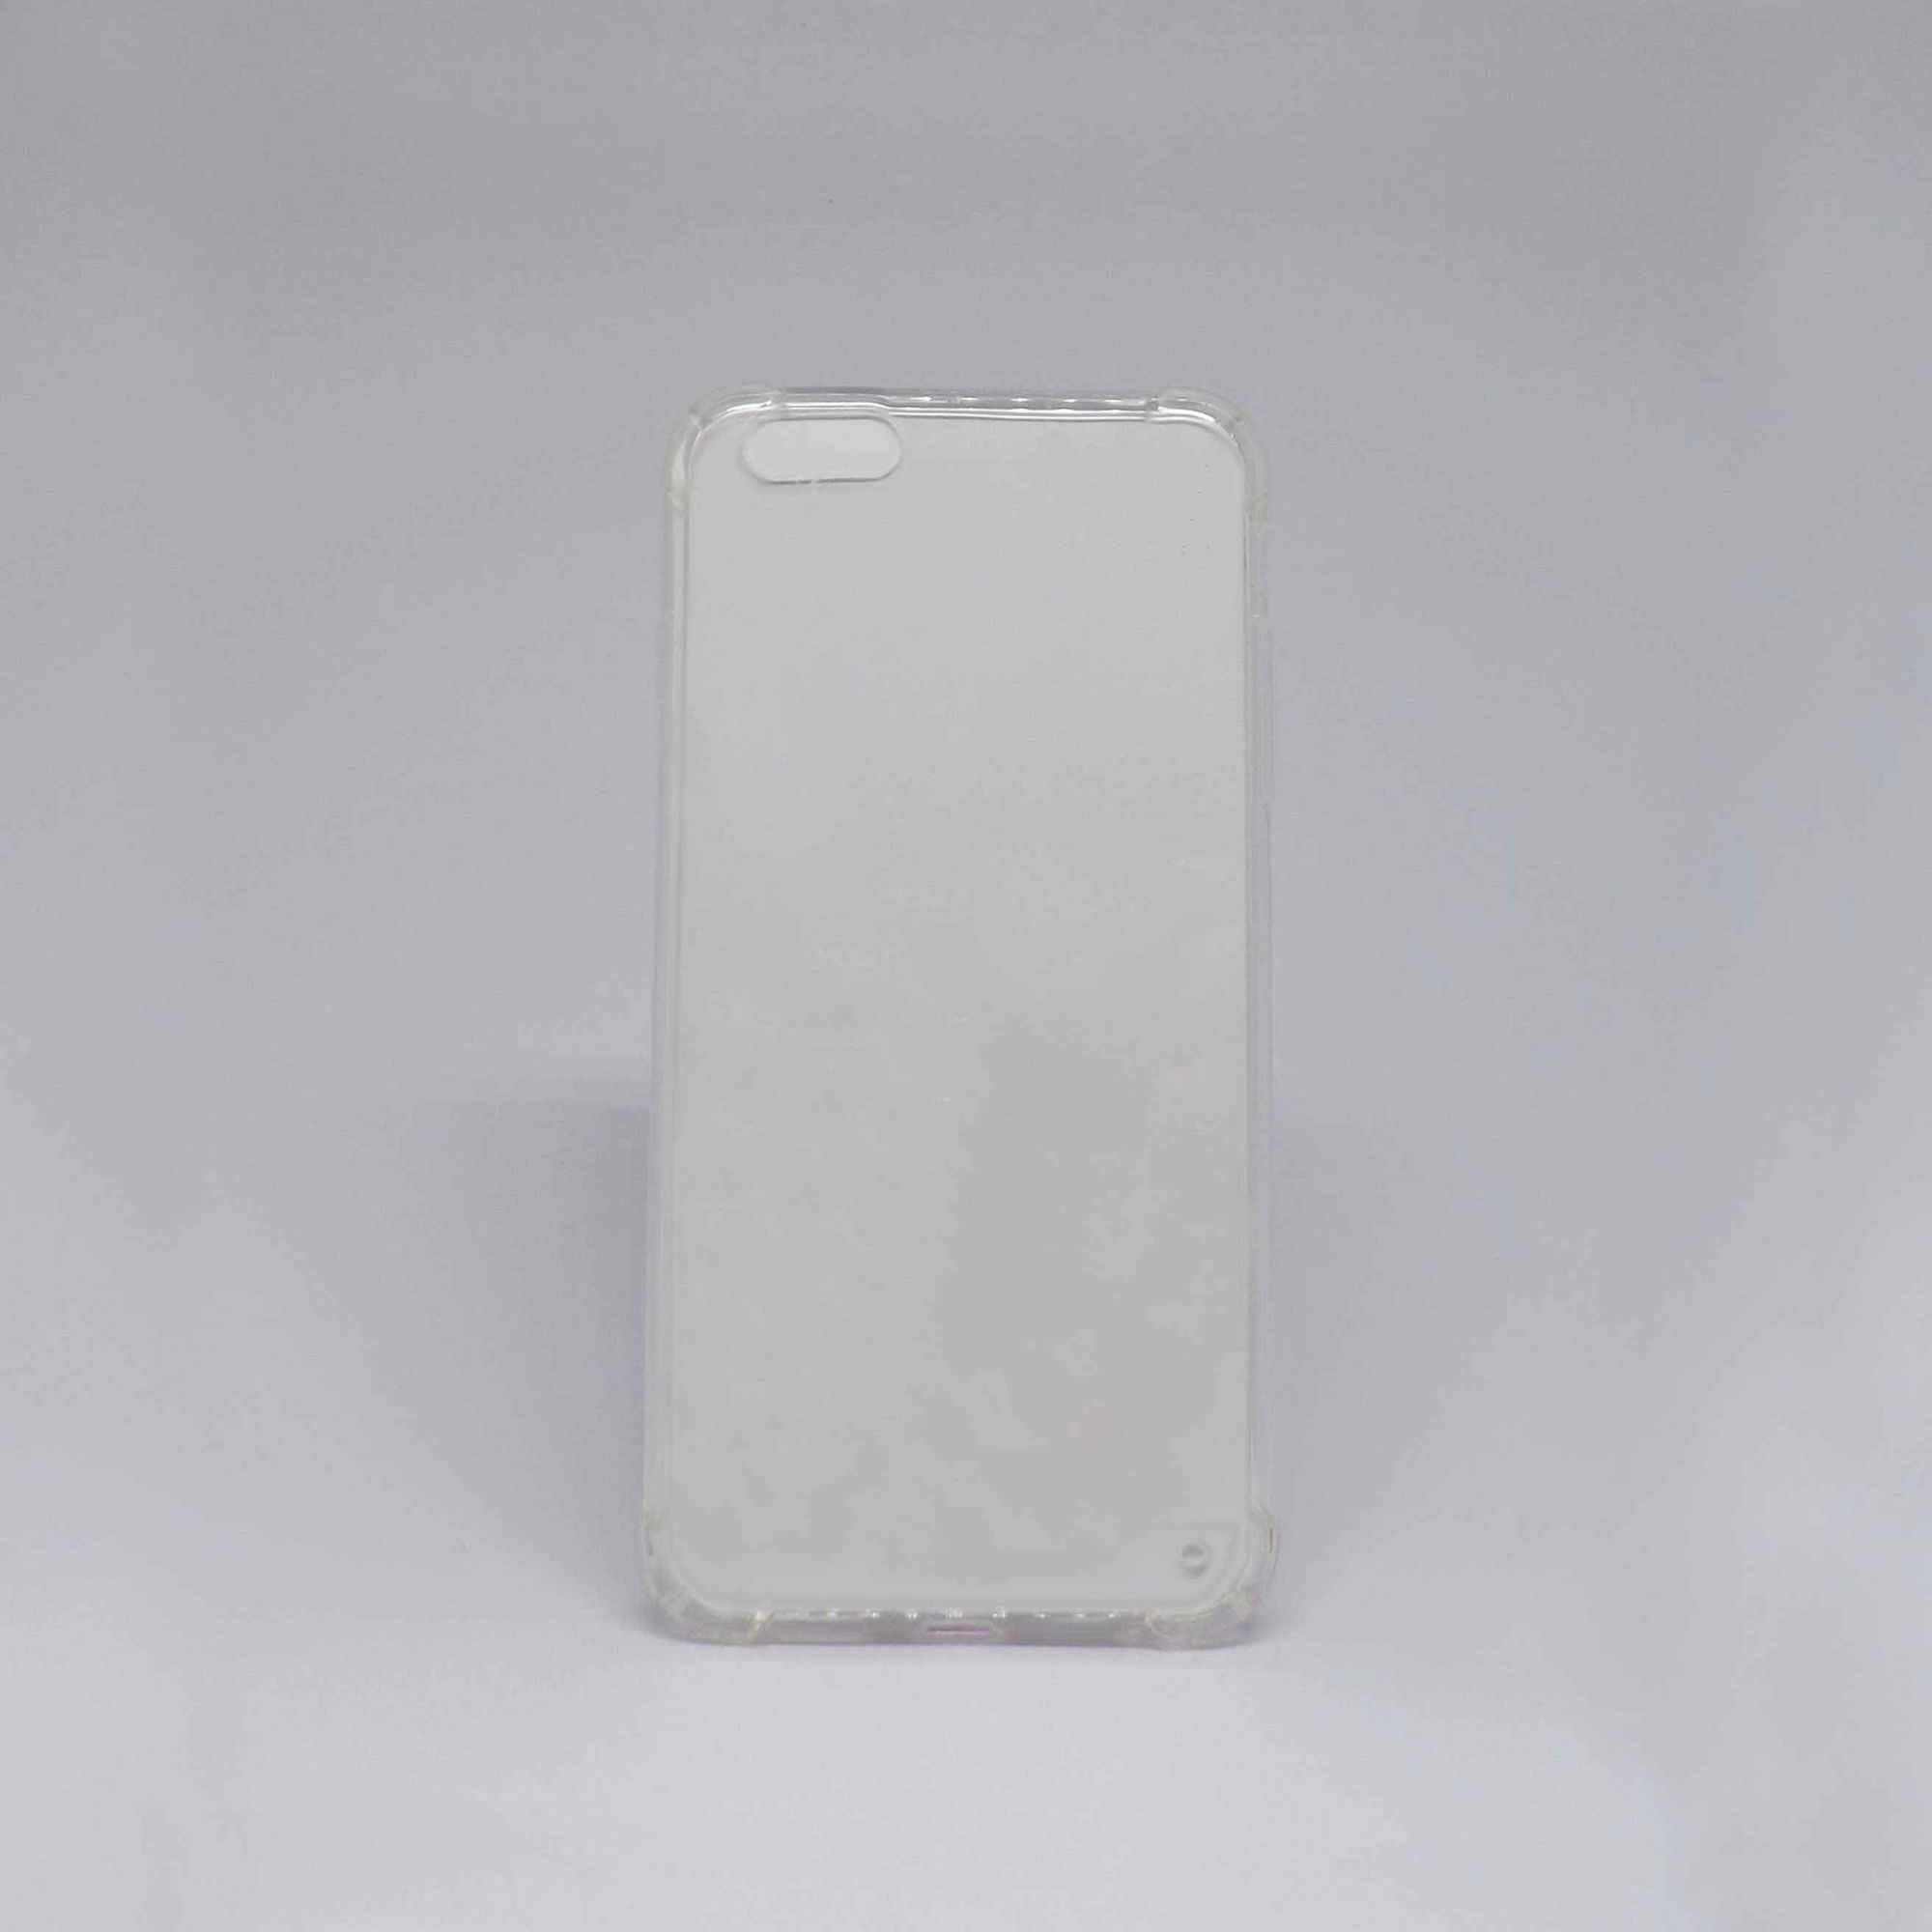 Capa iPhone 6s Plus Transparente